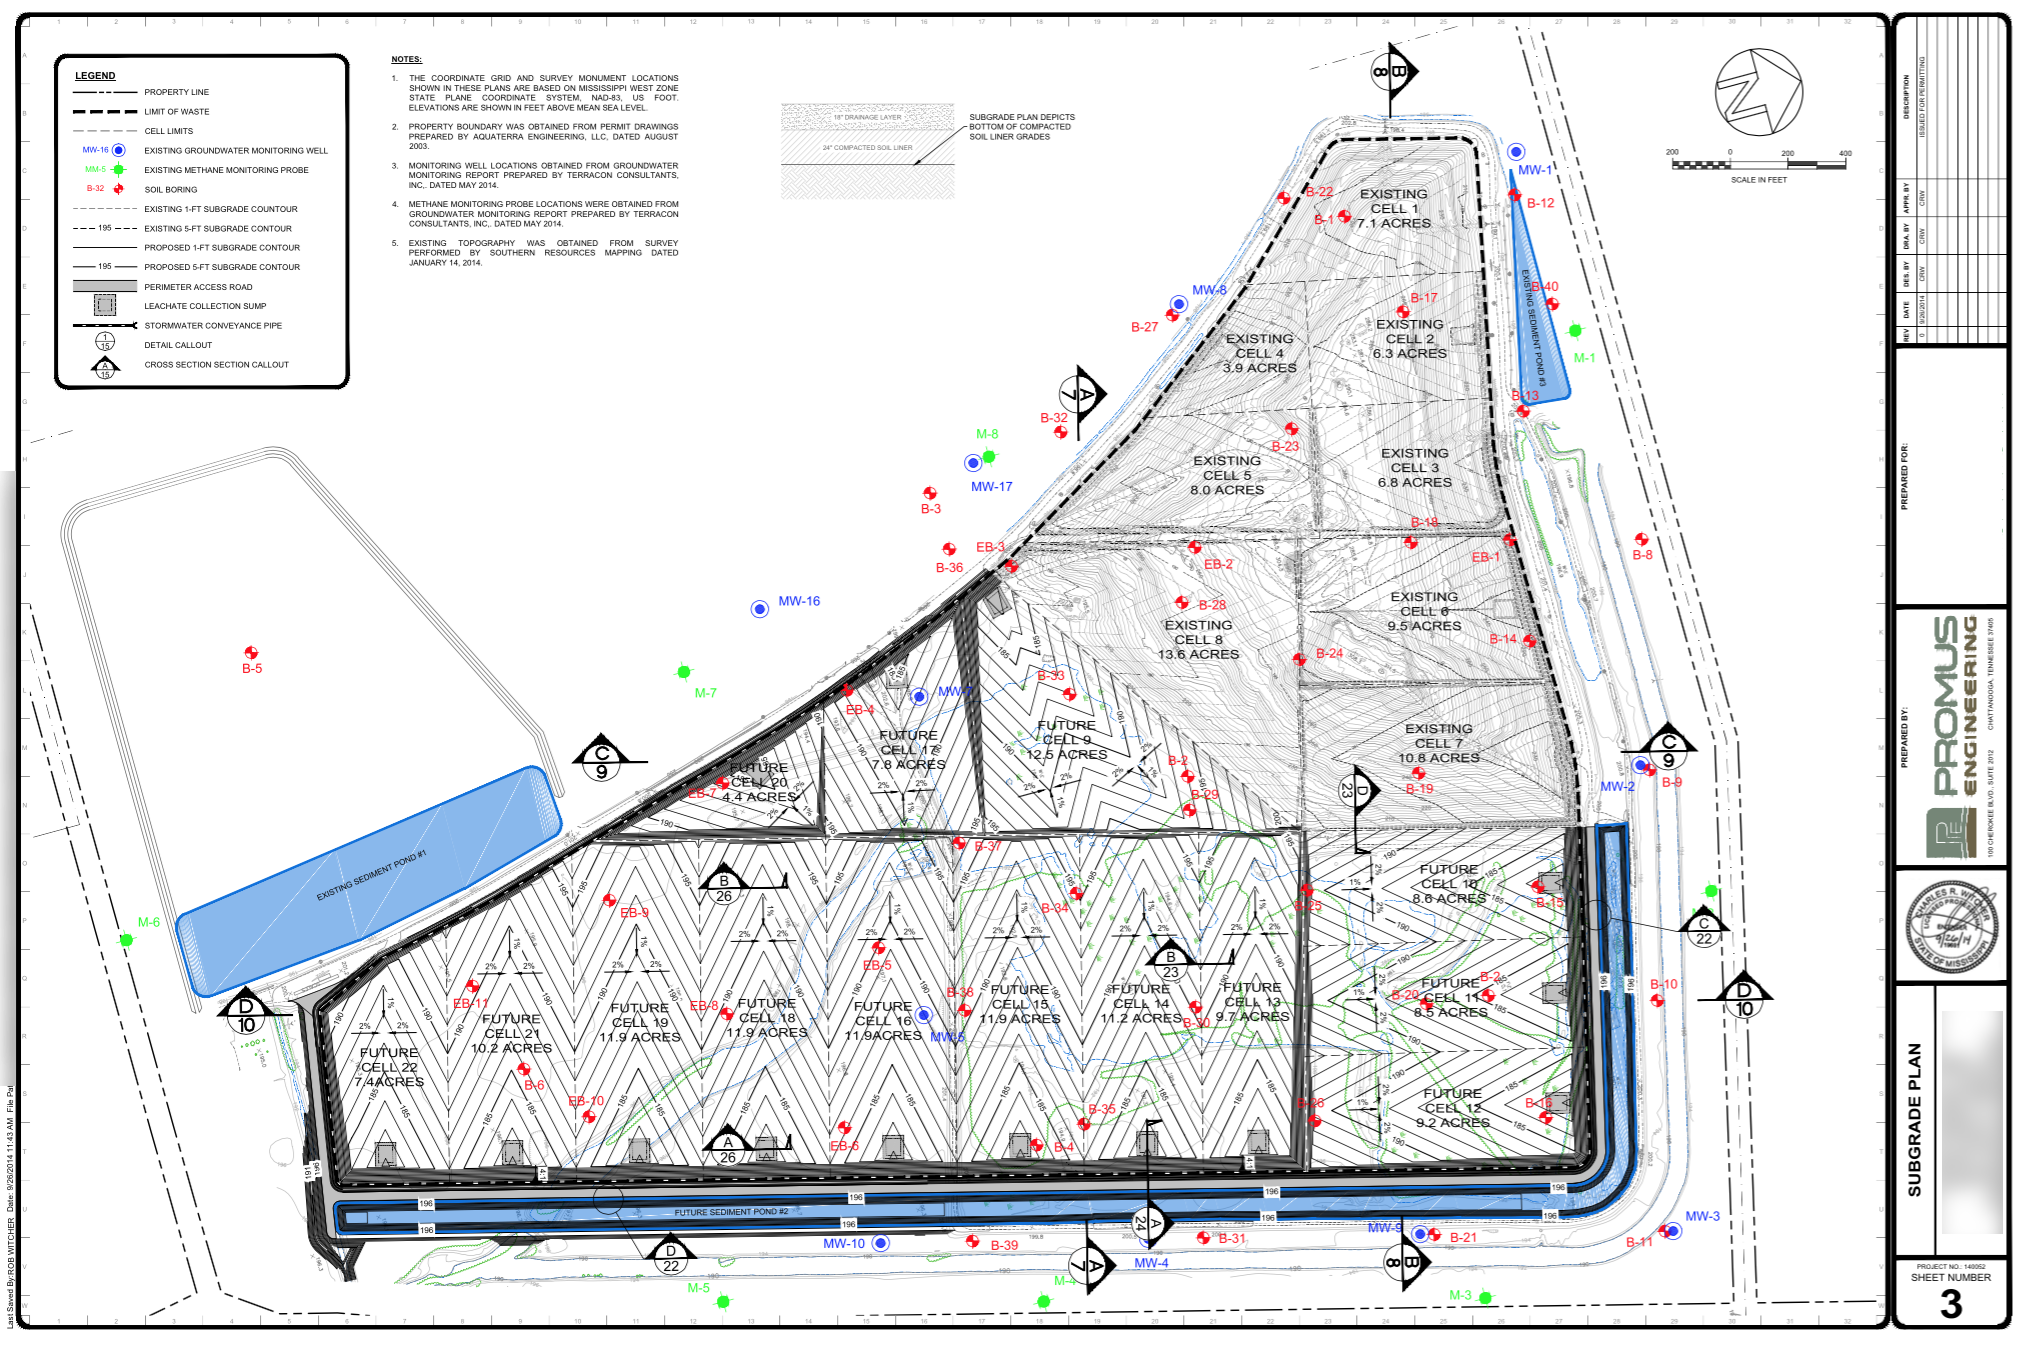 Permit renewal - grading plan, municipal solid waste facility, Mississippi.